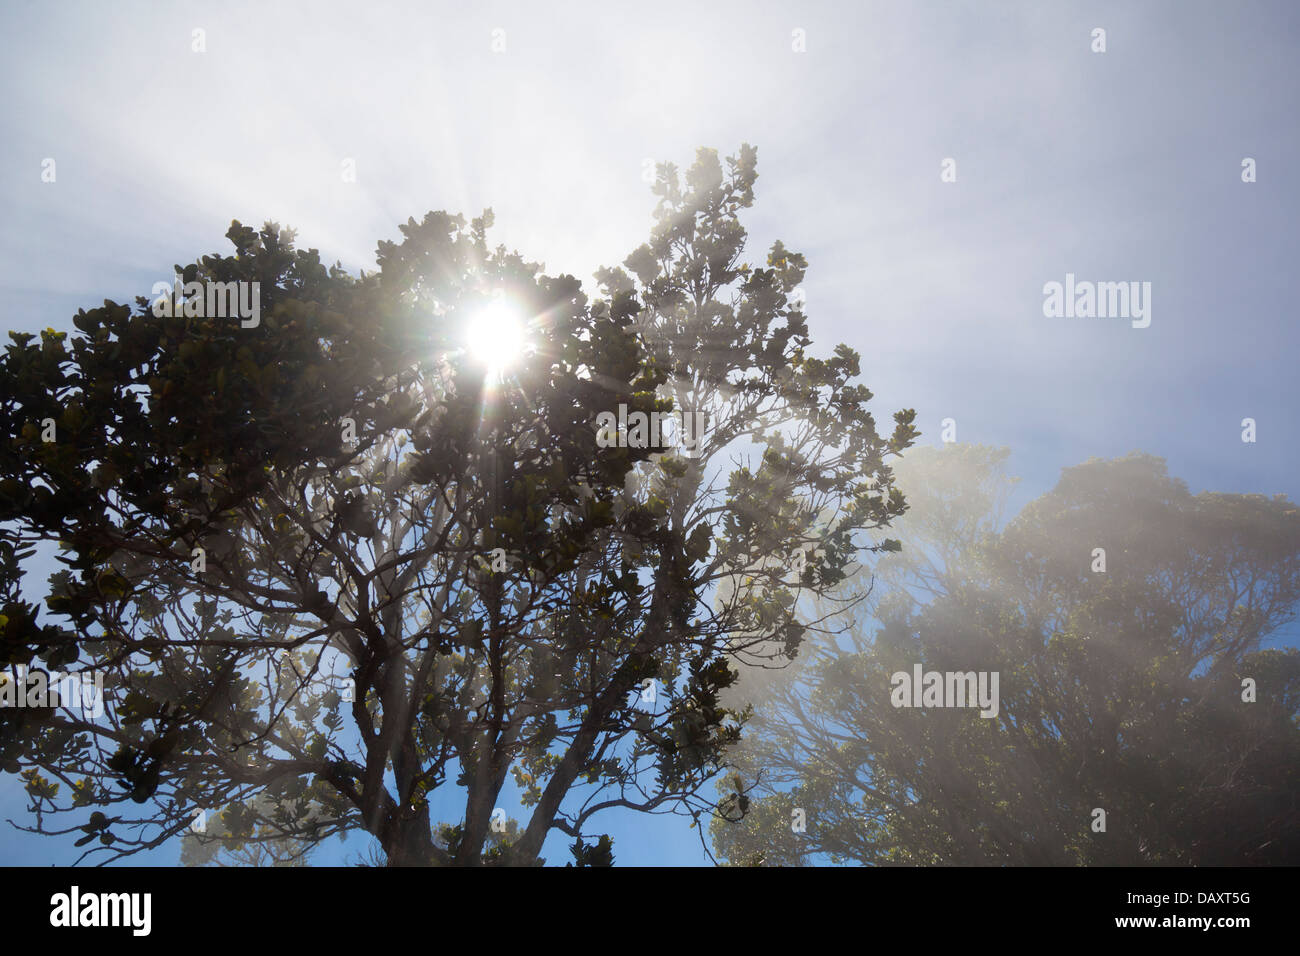 Sun shining through a tree with a bit of mist. - Stock Image